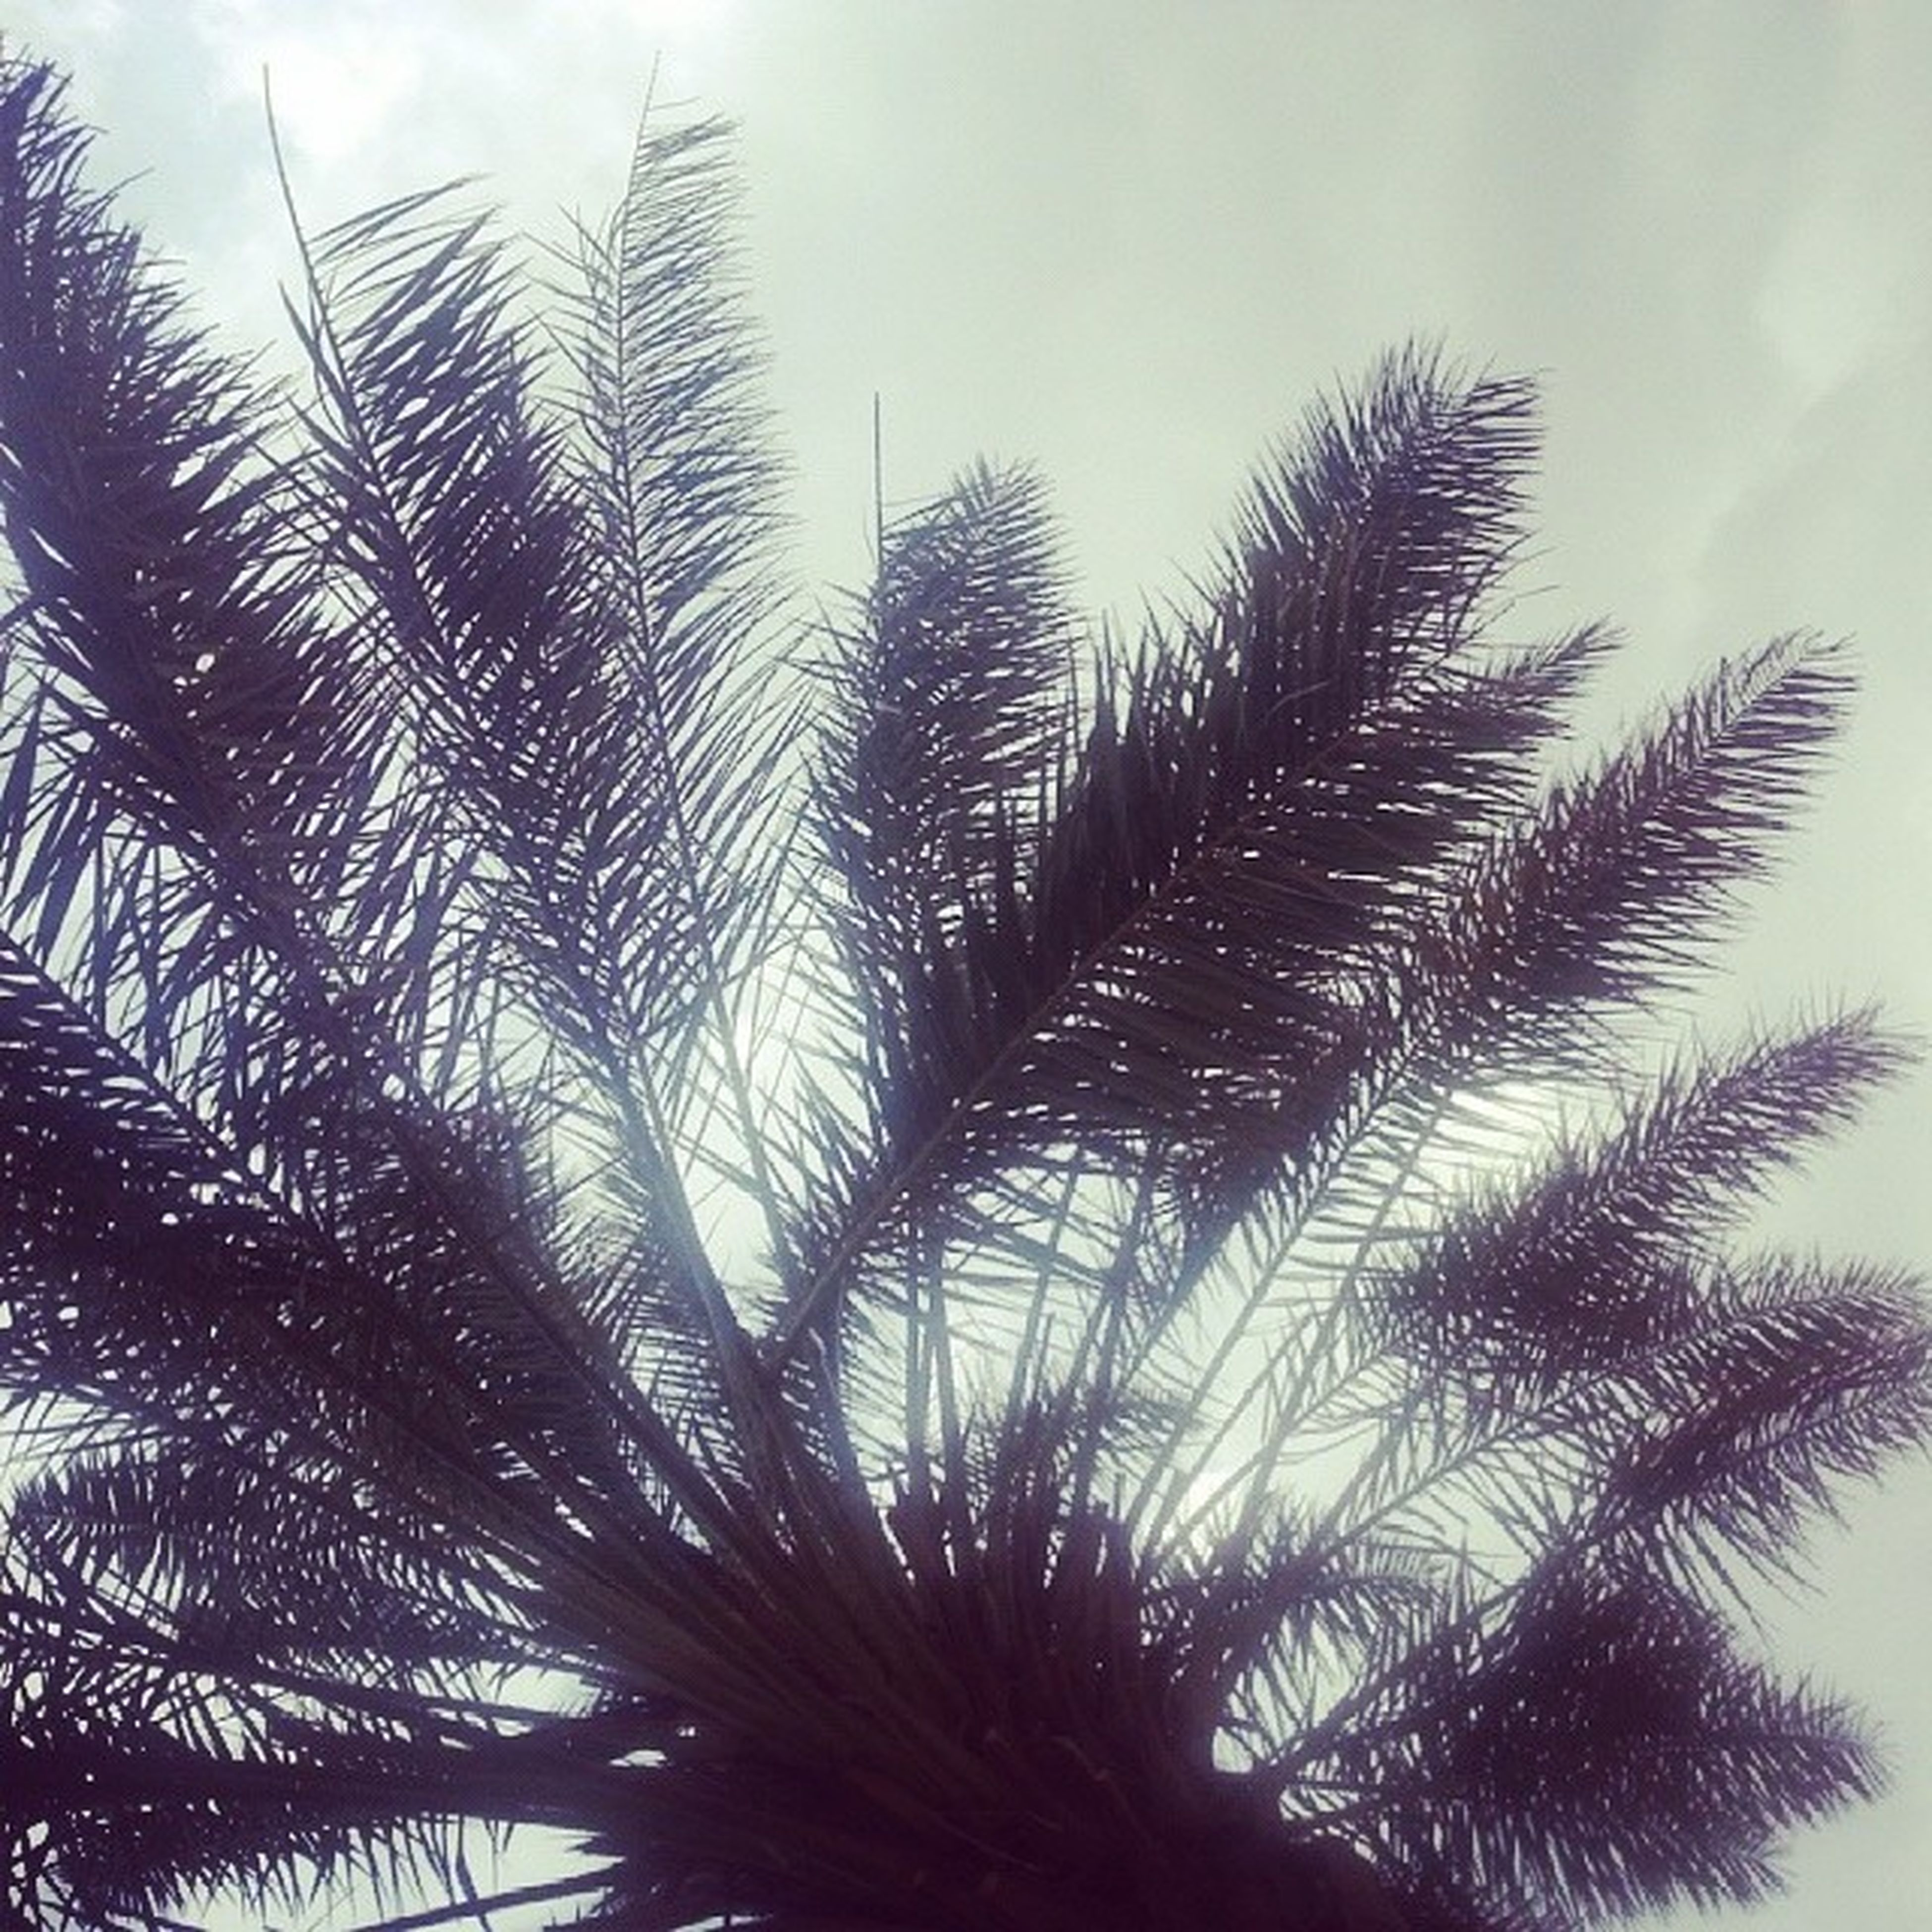 low angle view, growth, tree, sky, palm tree, nature, tranquility, beauty in nature, day, branch, palm leaf, outdoors, no people, tall - high, cloud - sky, leaf, scenics, tree trunk, backgrounds, silhouette